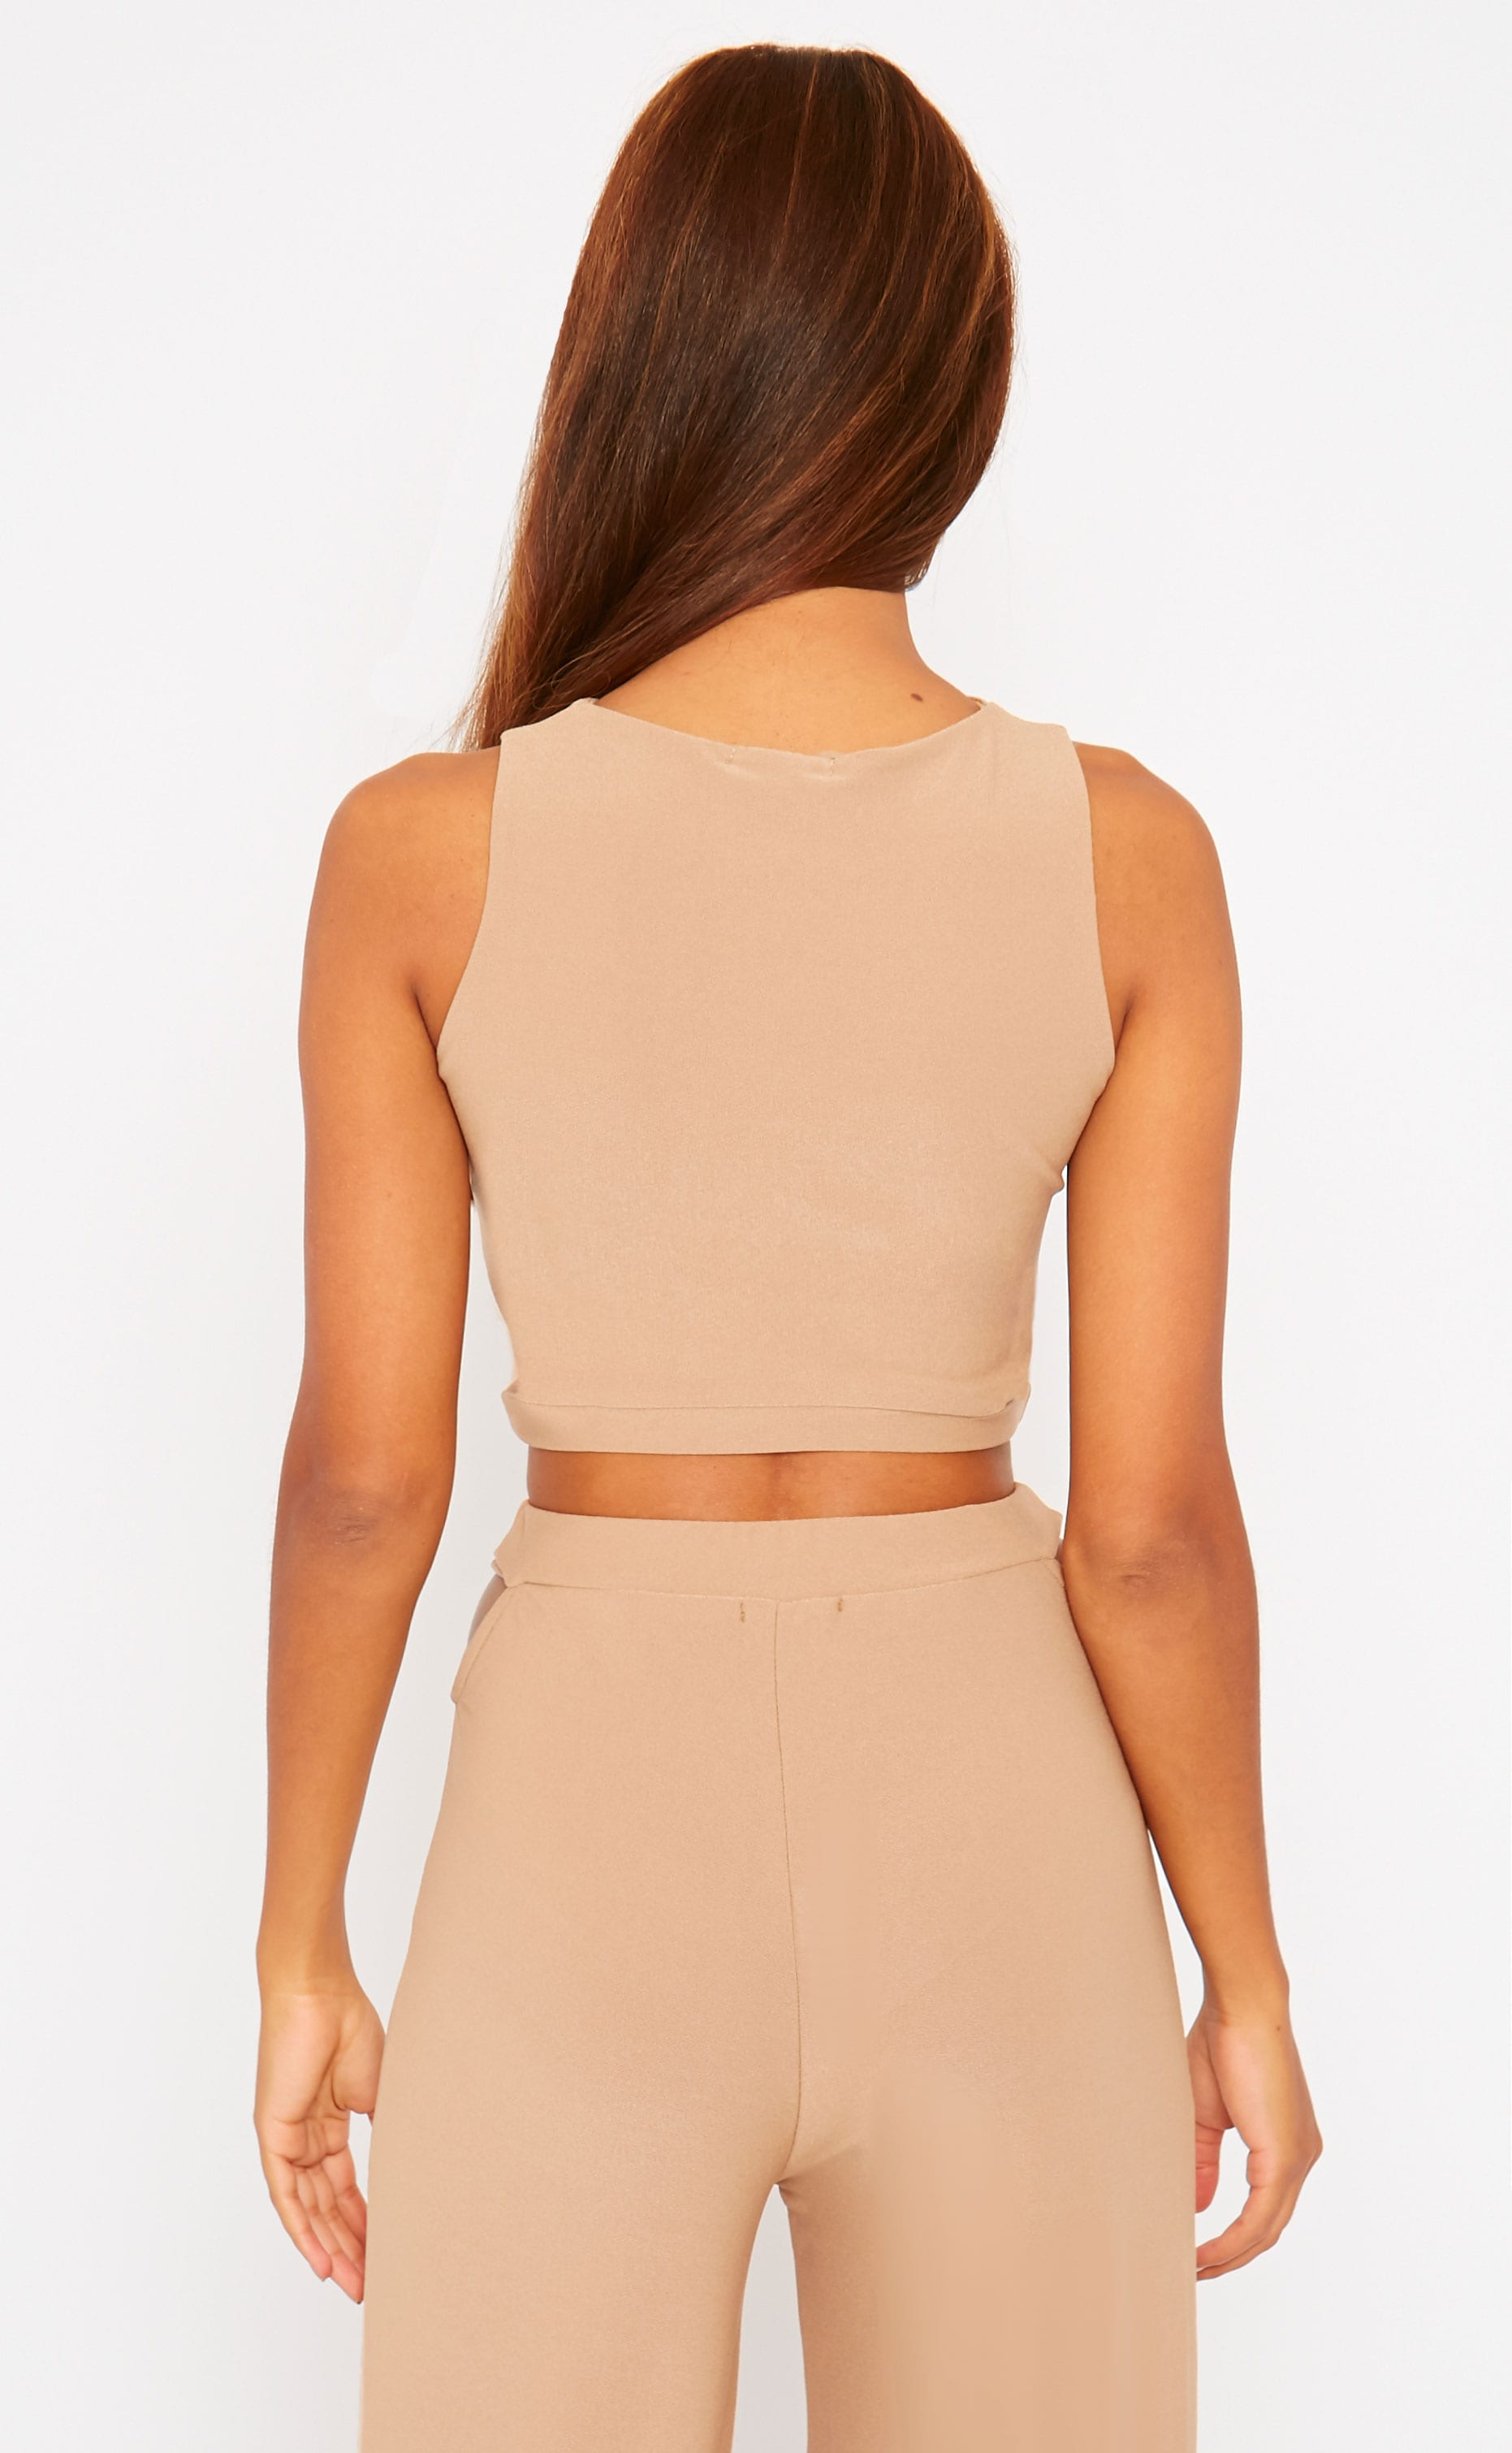 Elphina Camel Crepe Cut Out Crop Top 2